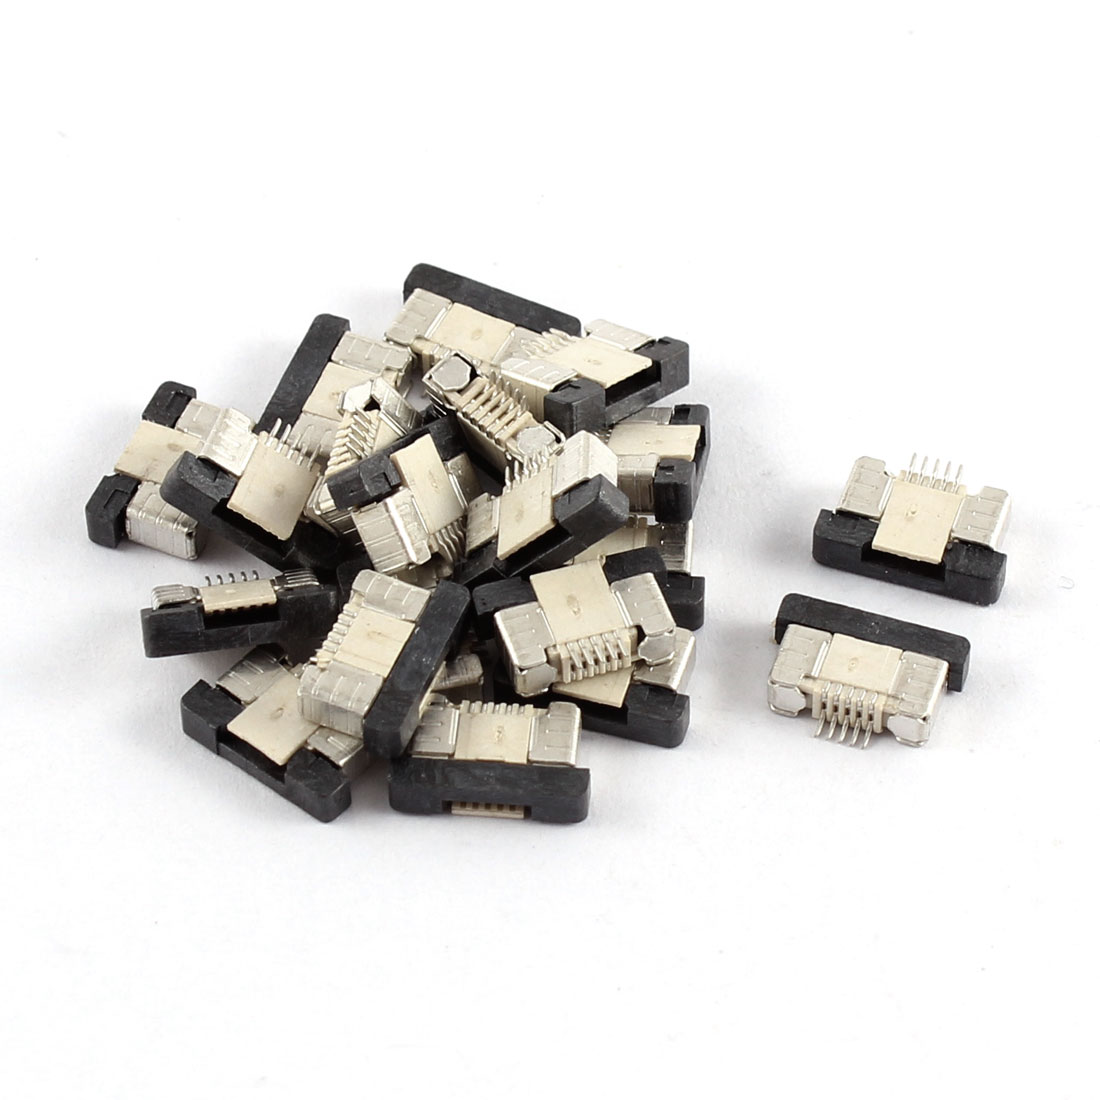 20Pcs Bottom Port 5Pin 0.5mm Pitch FFC FPC Ribbon Sockets Connector